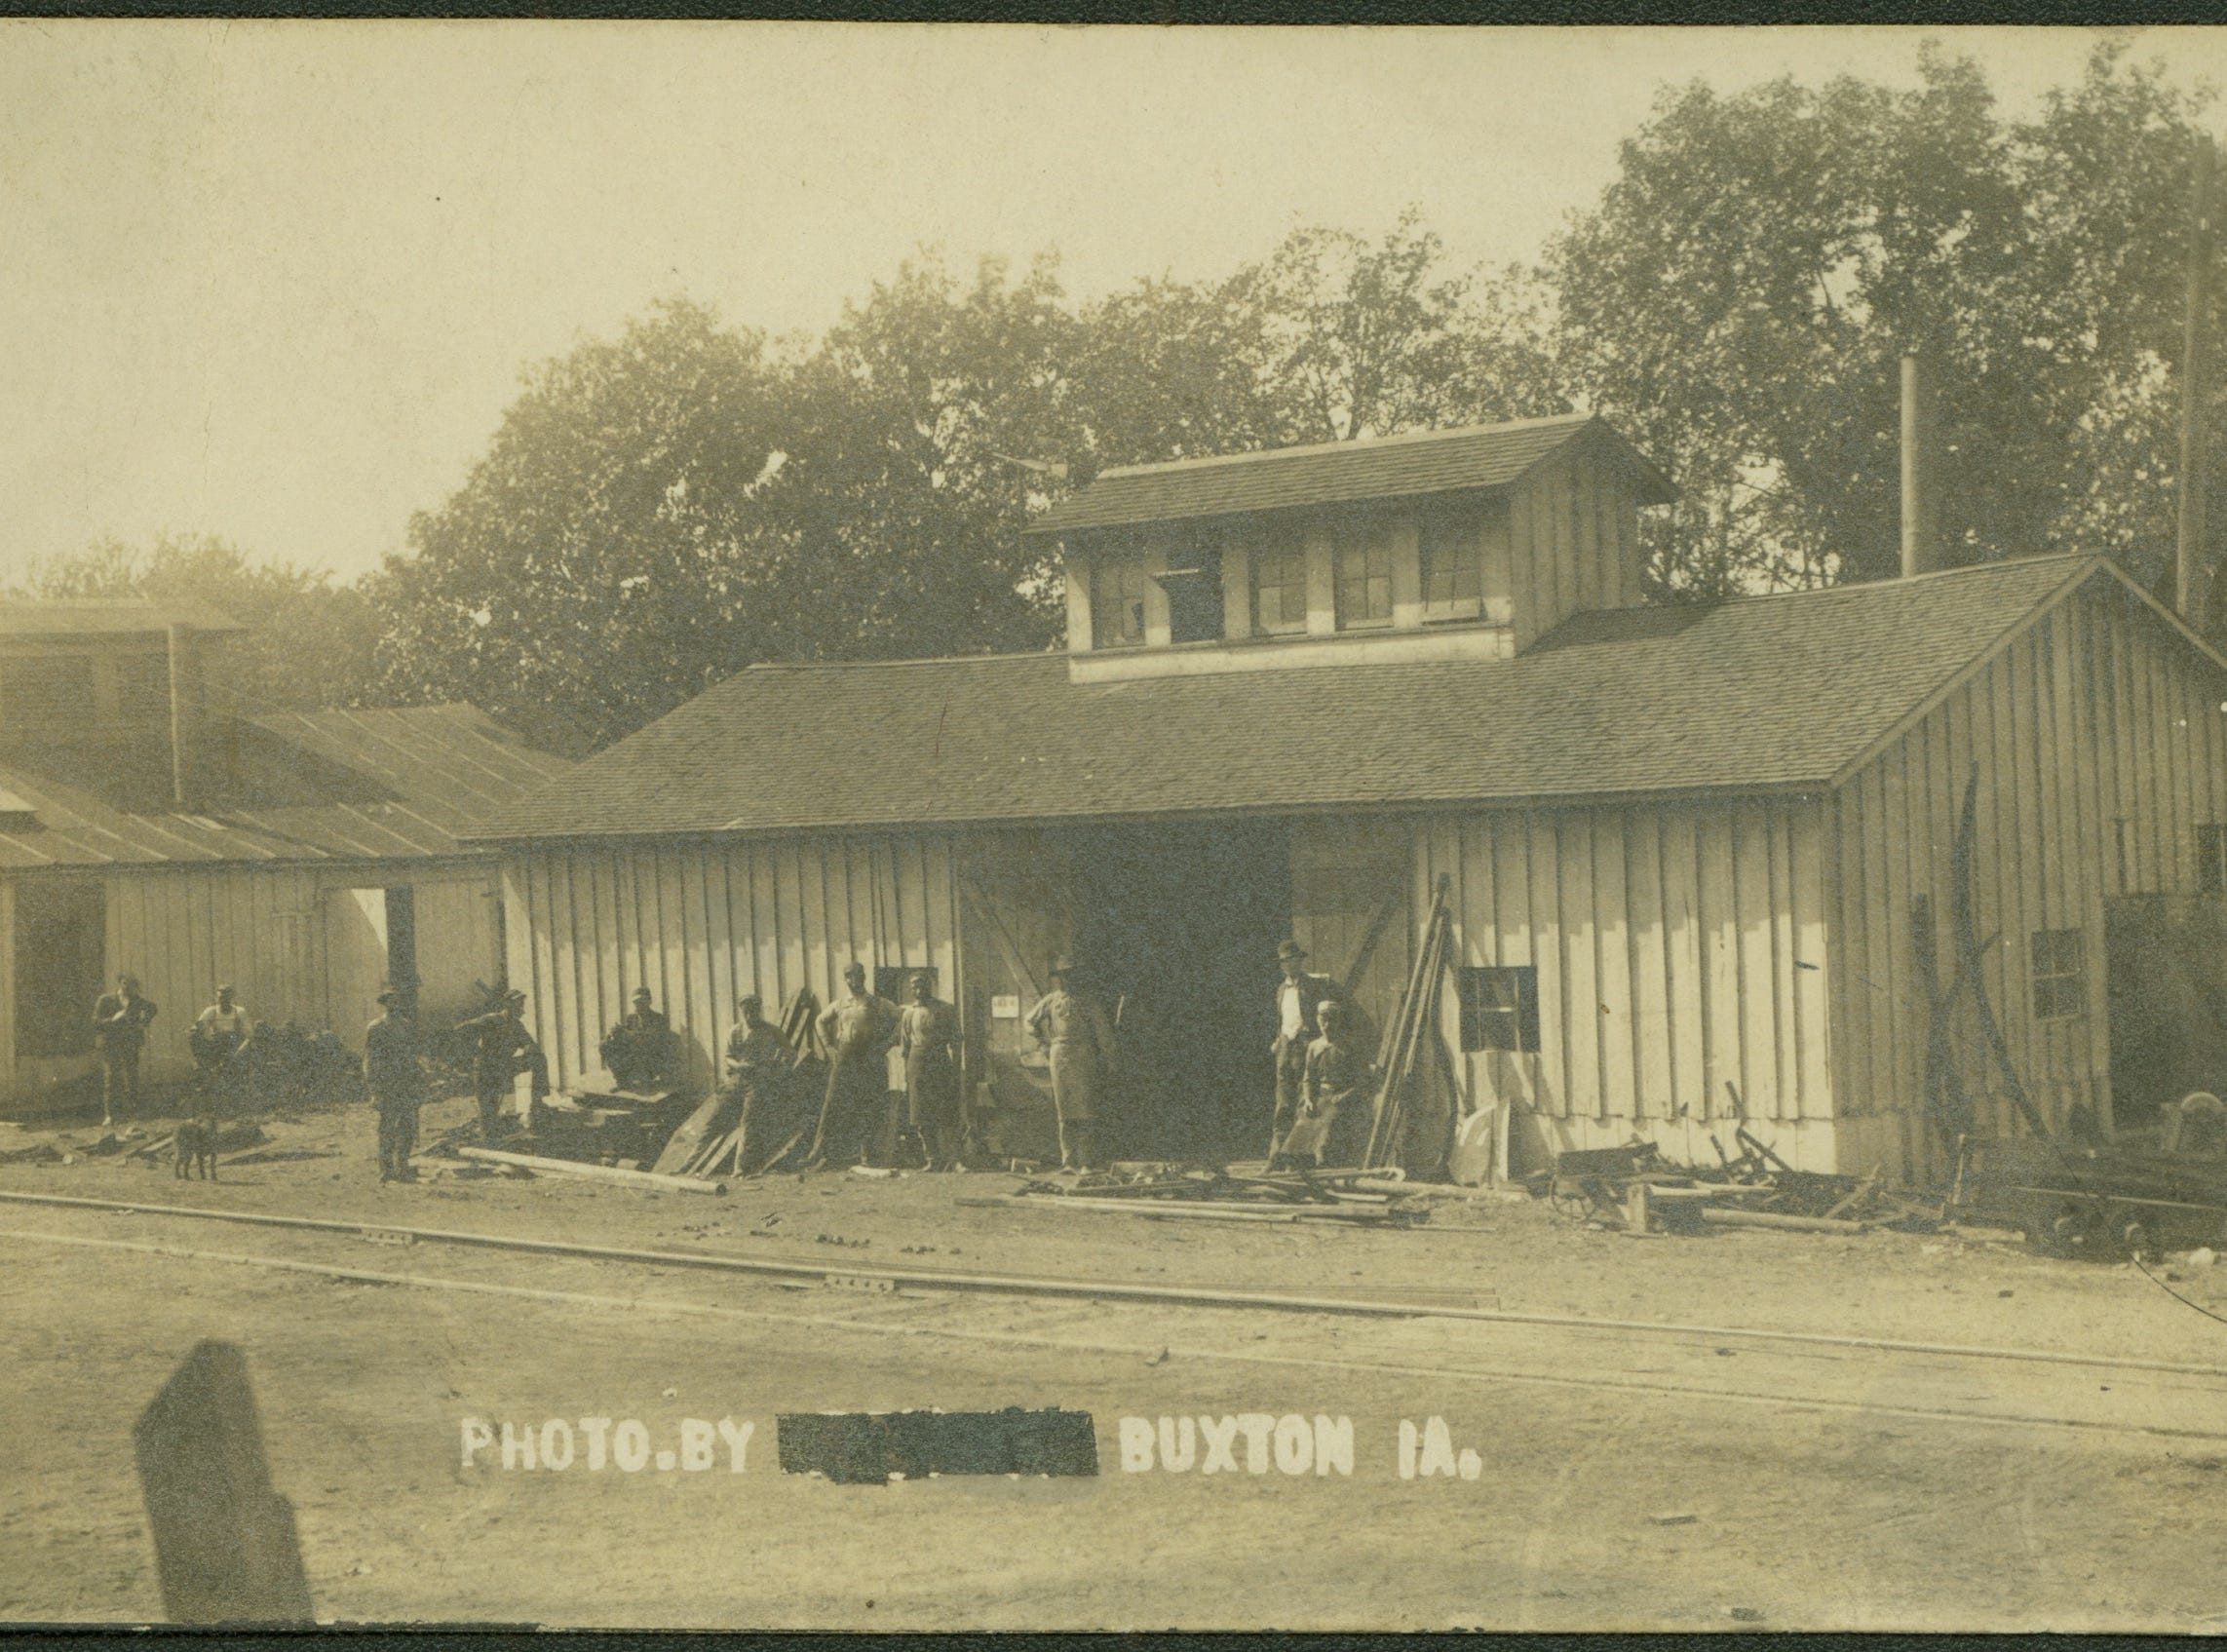 A blacksmith shop and its employees in Buxton, Iowa, in about 1905.